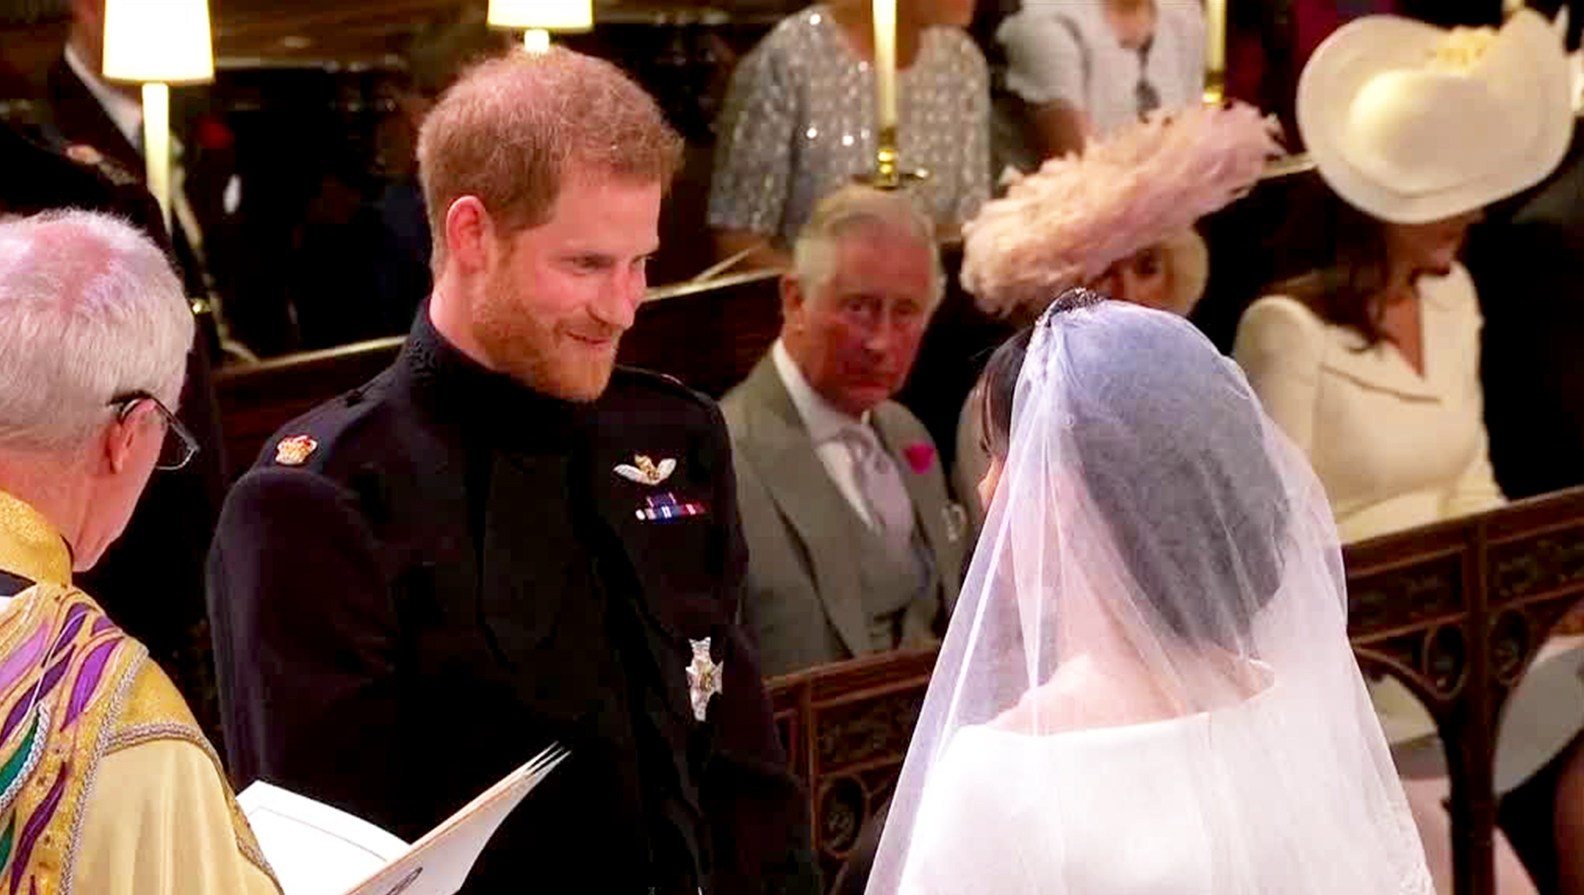 Prince Harry and Meghan Markle Royal Wedding Vows